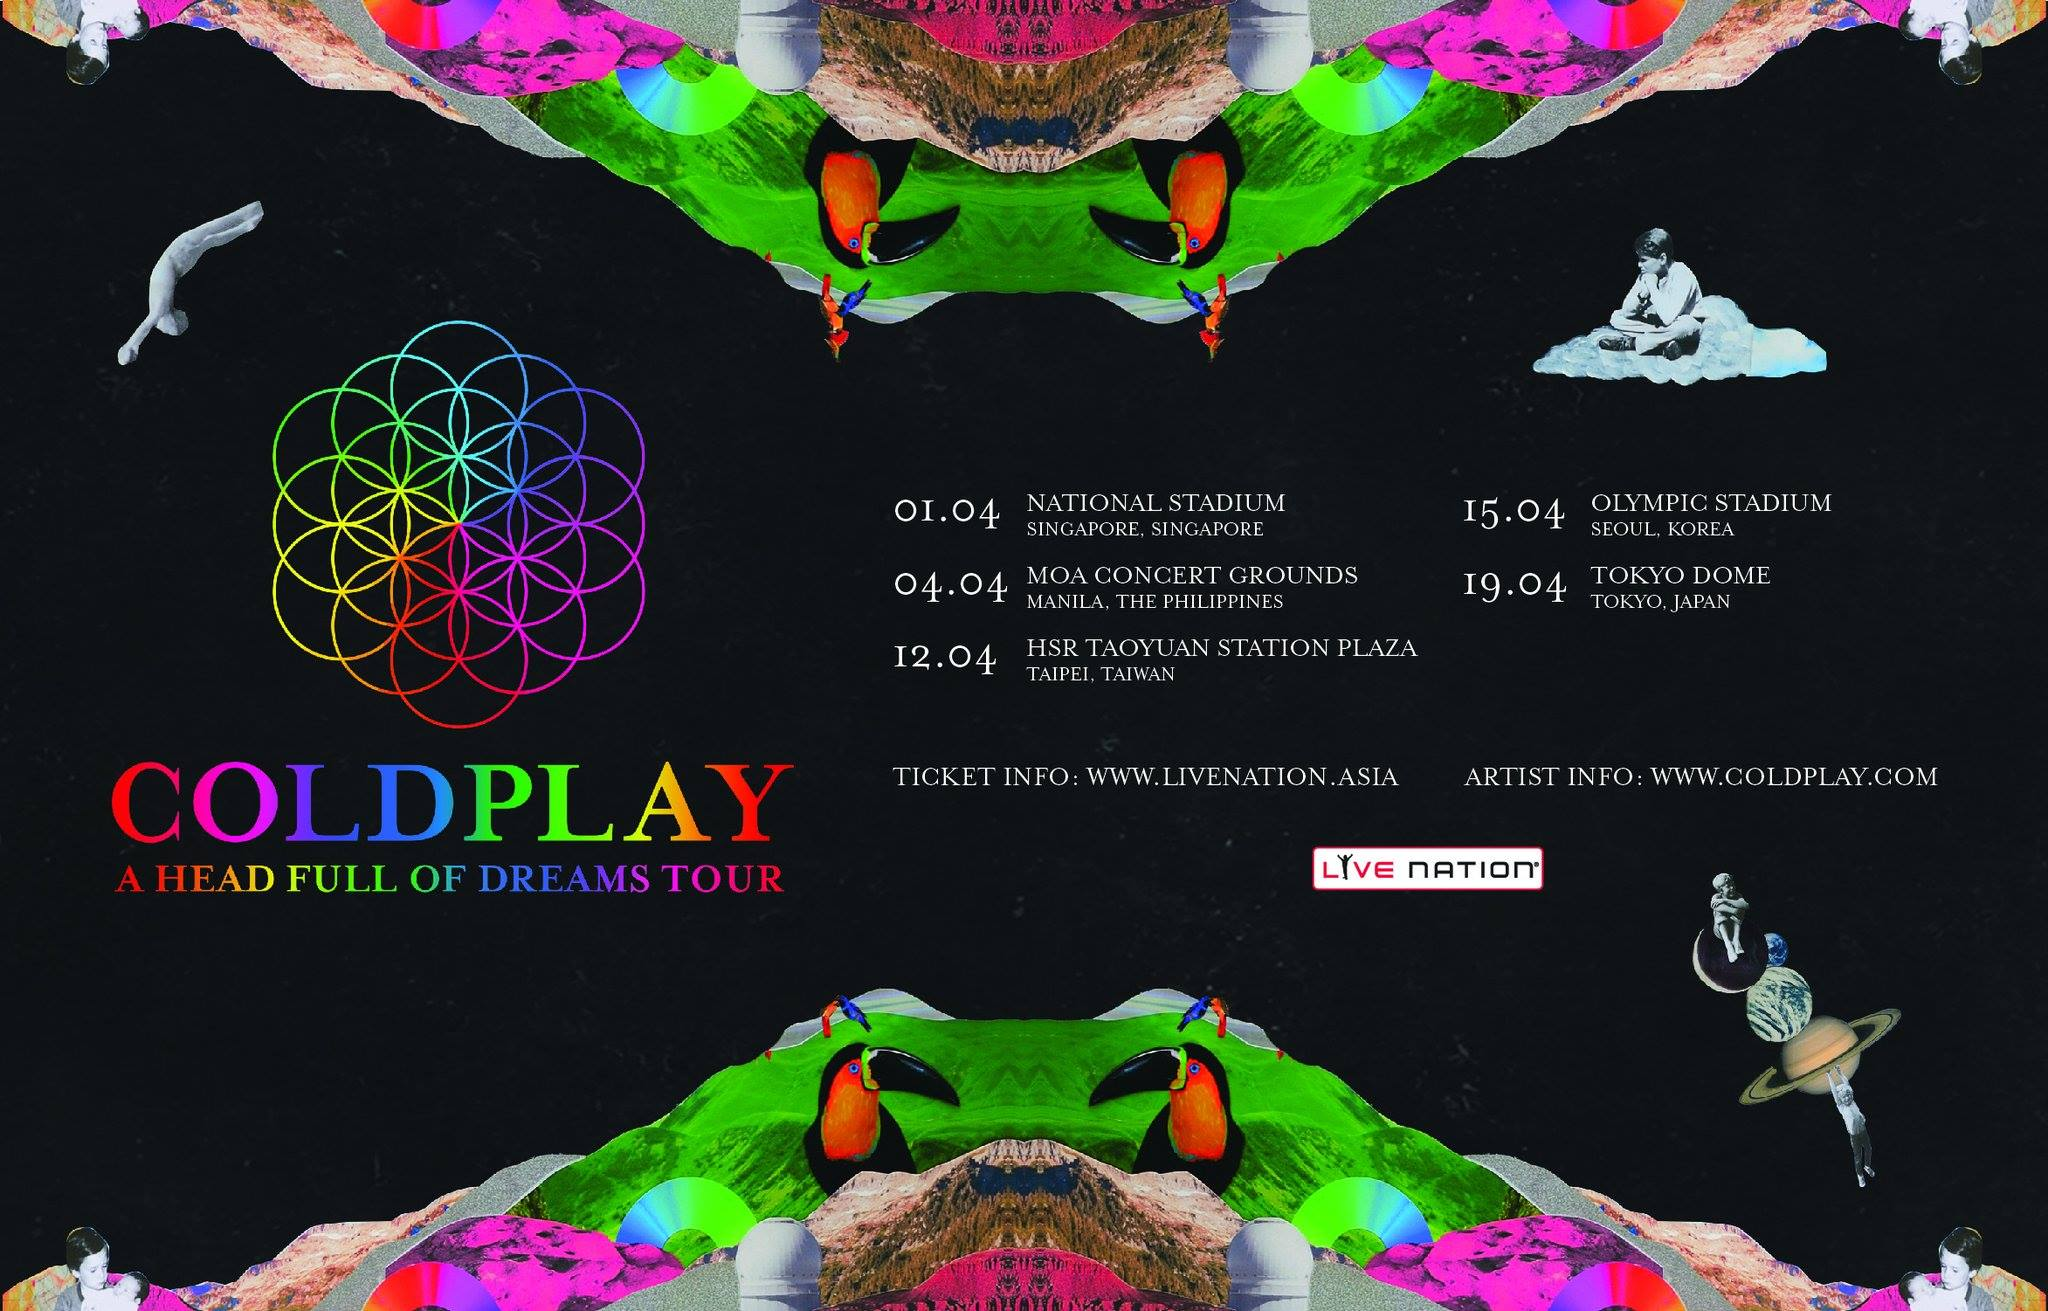 Coldplay A Head Full of Dreams Tour Asia April 2017